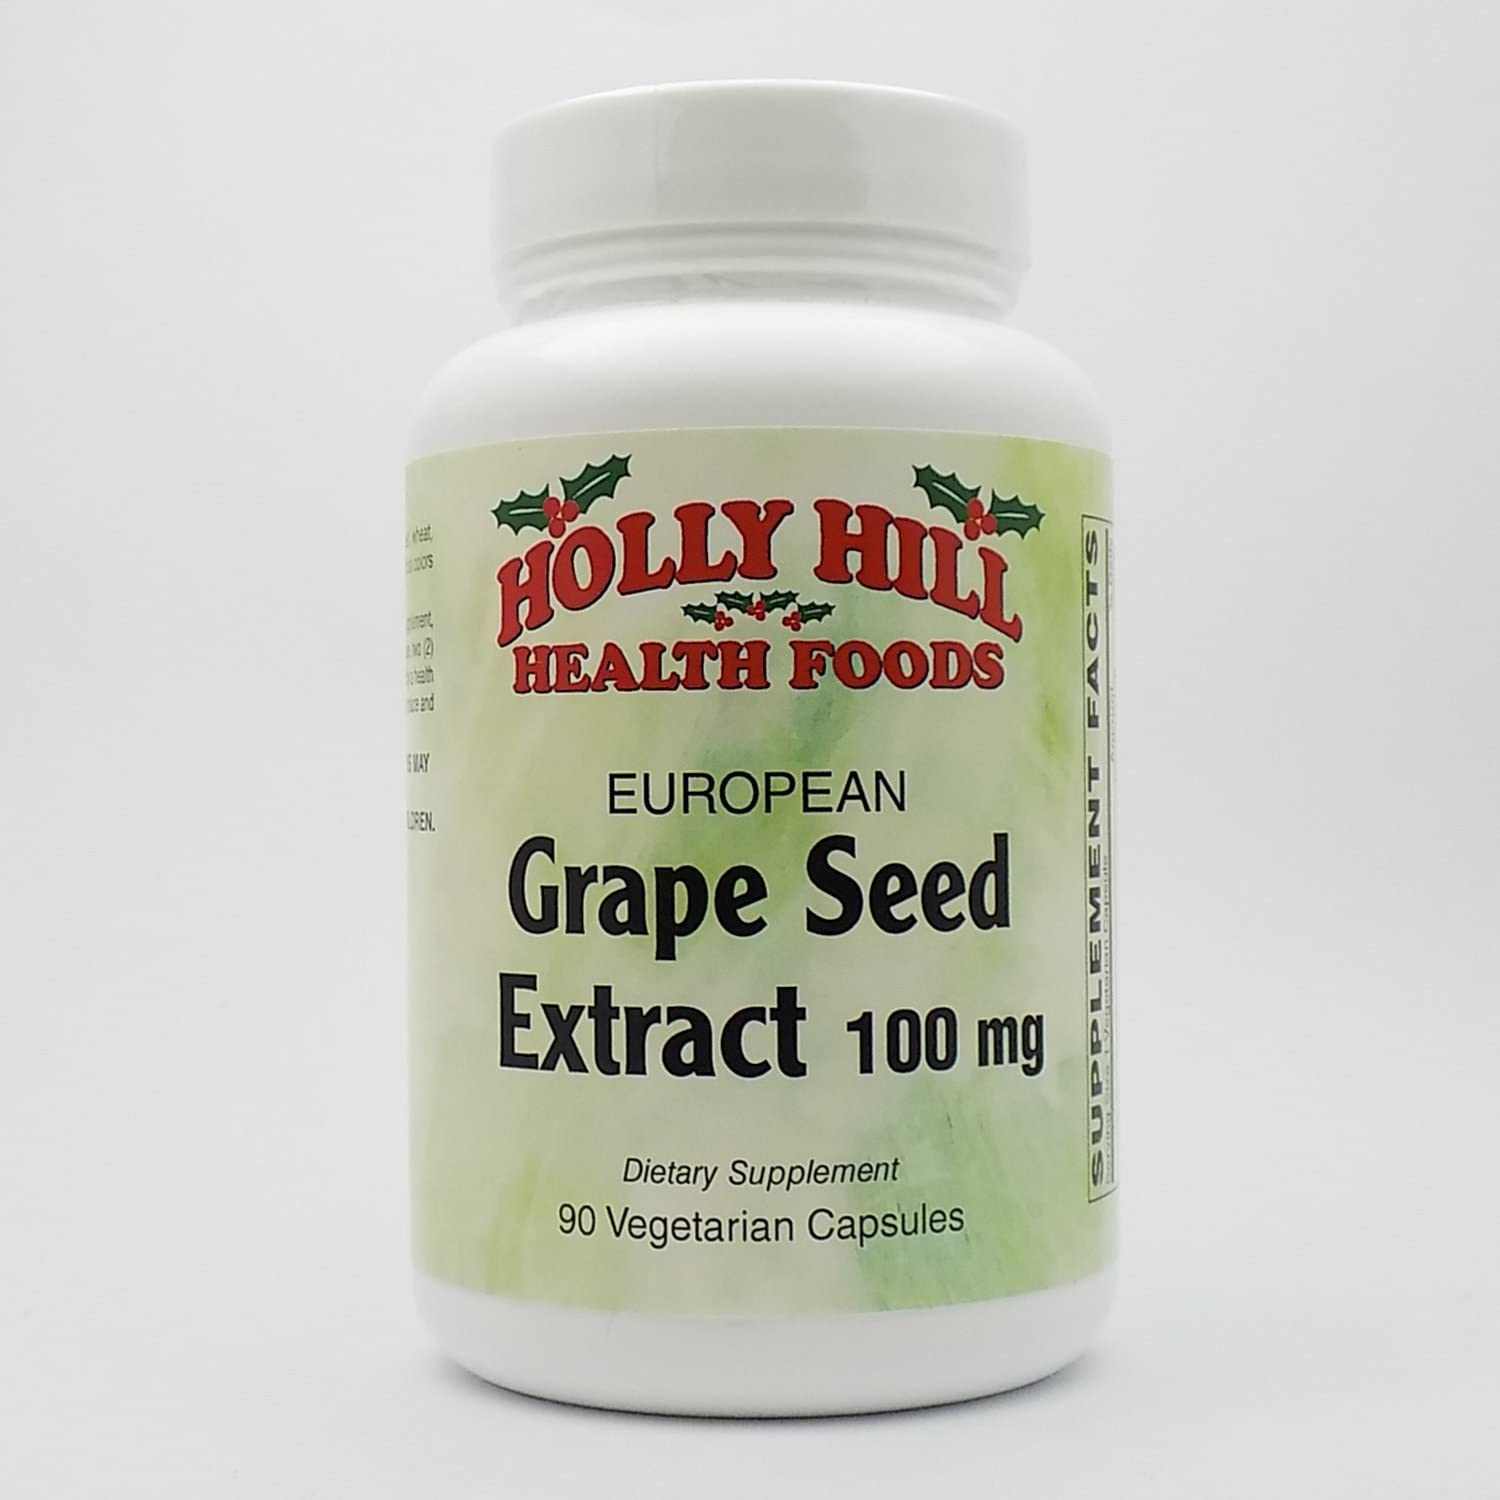 Holly Hill Health Foods, European Grape Seed Extract 100 MG, 90 Capsules